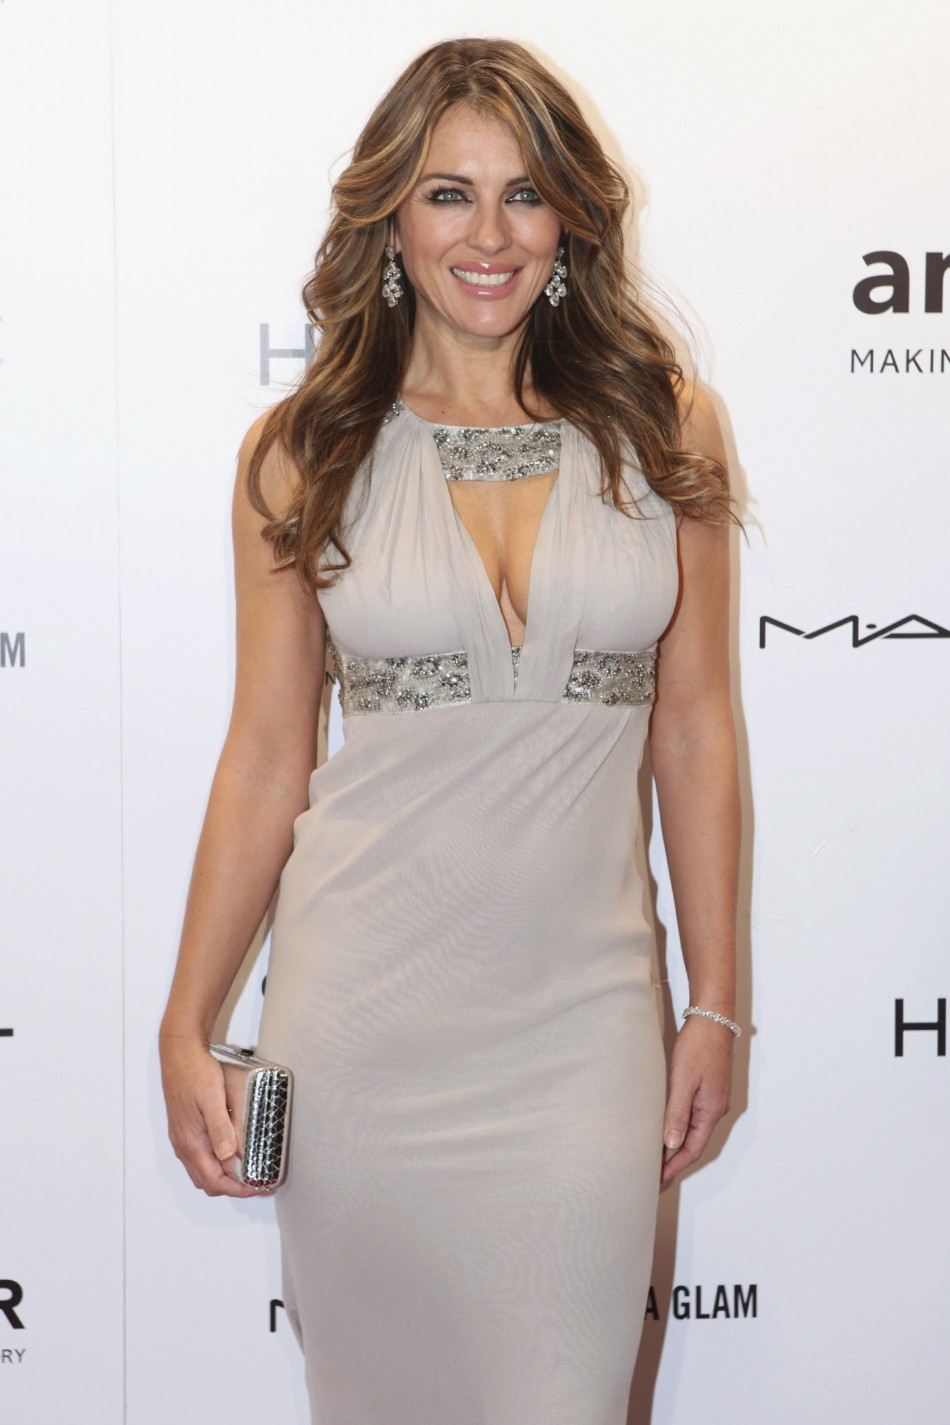 Actress and model Elizabeth Hurley